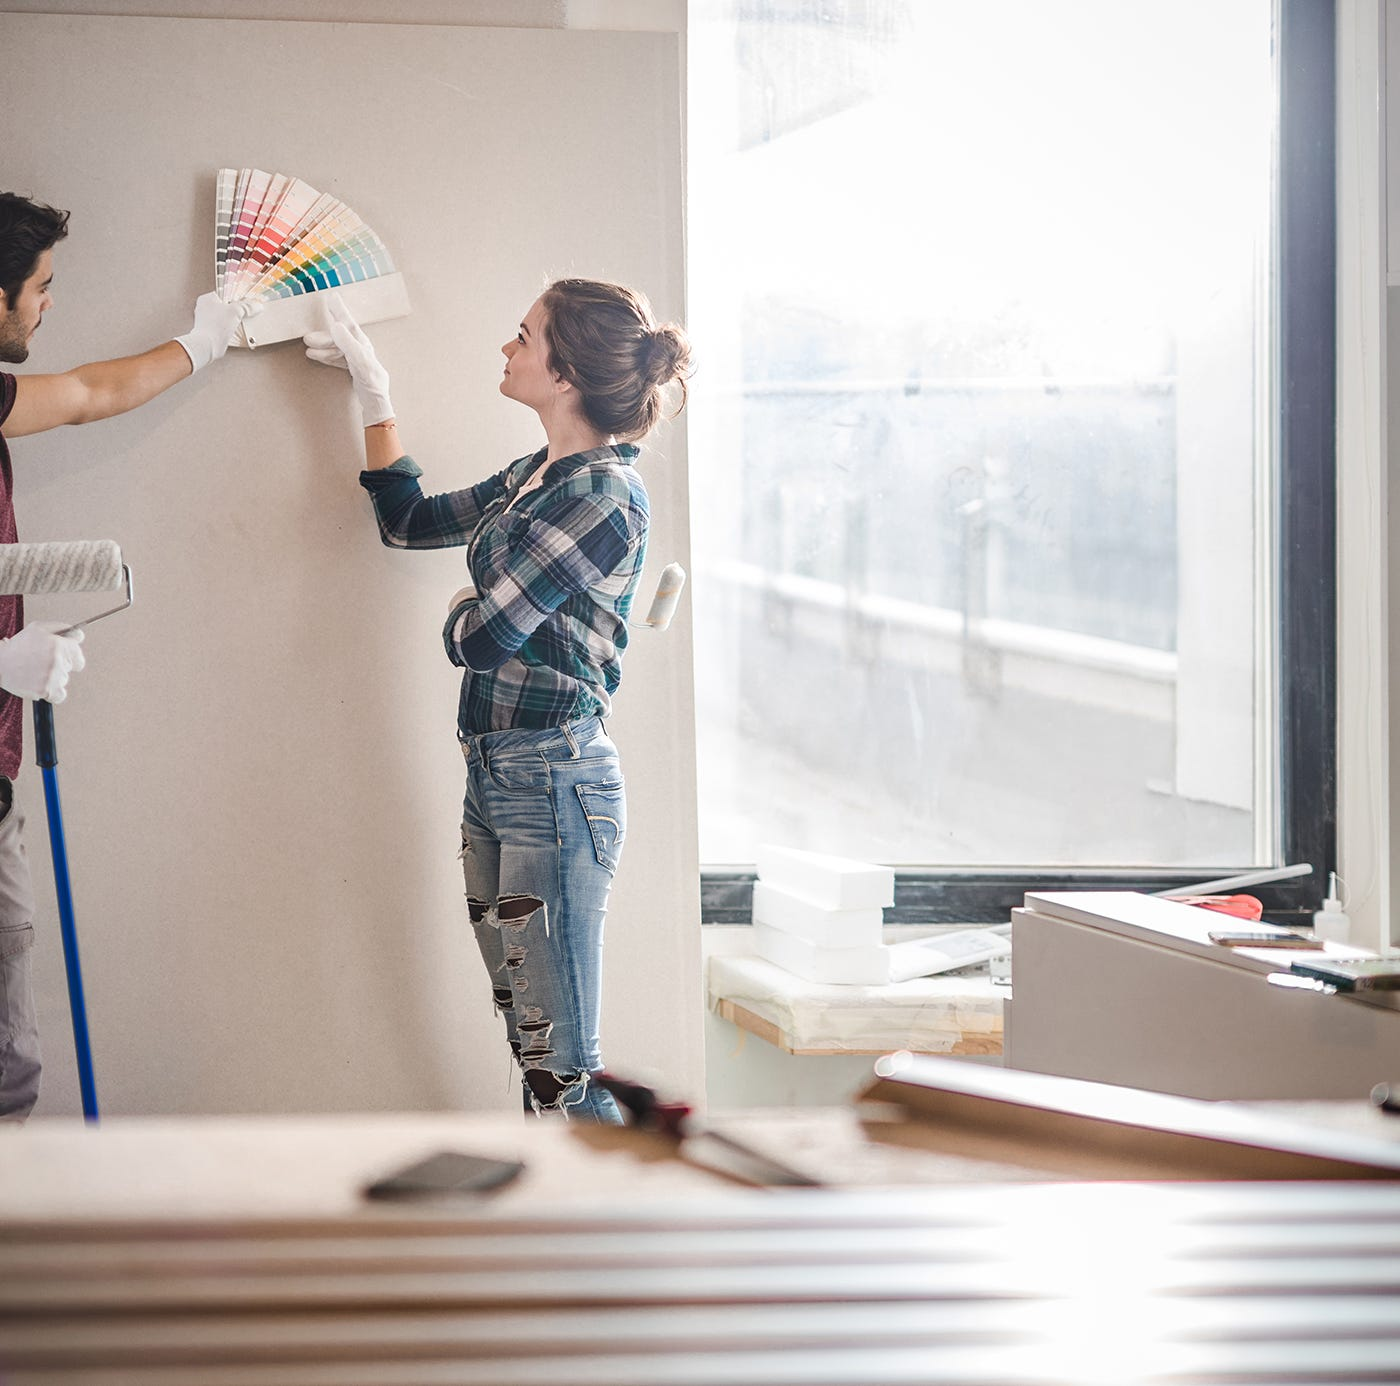 Homeowners More Likely to take on D.I.Y. Remodels, Says REALTOR® Survey